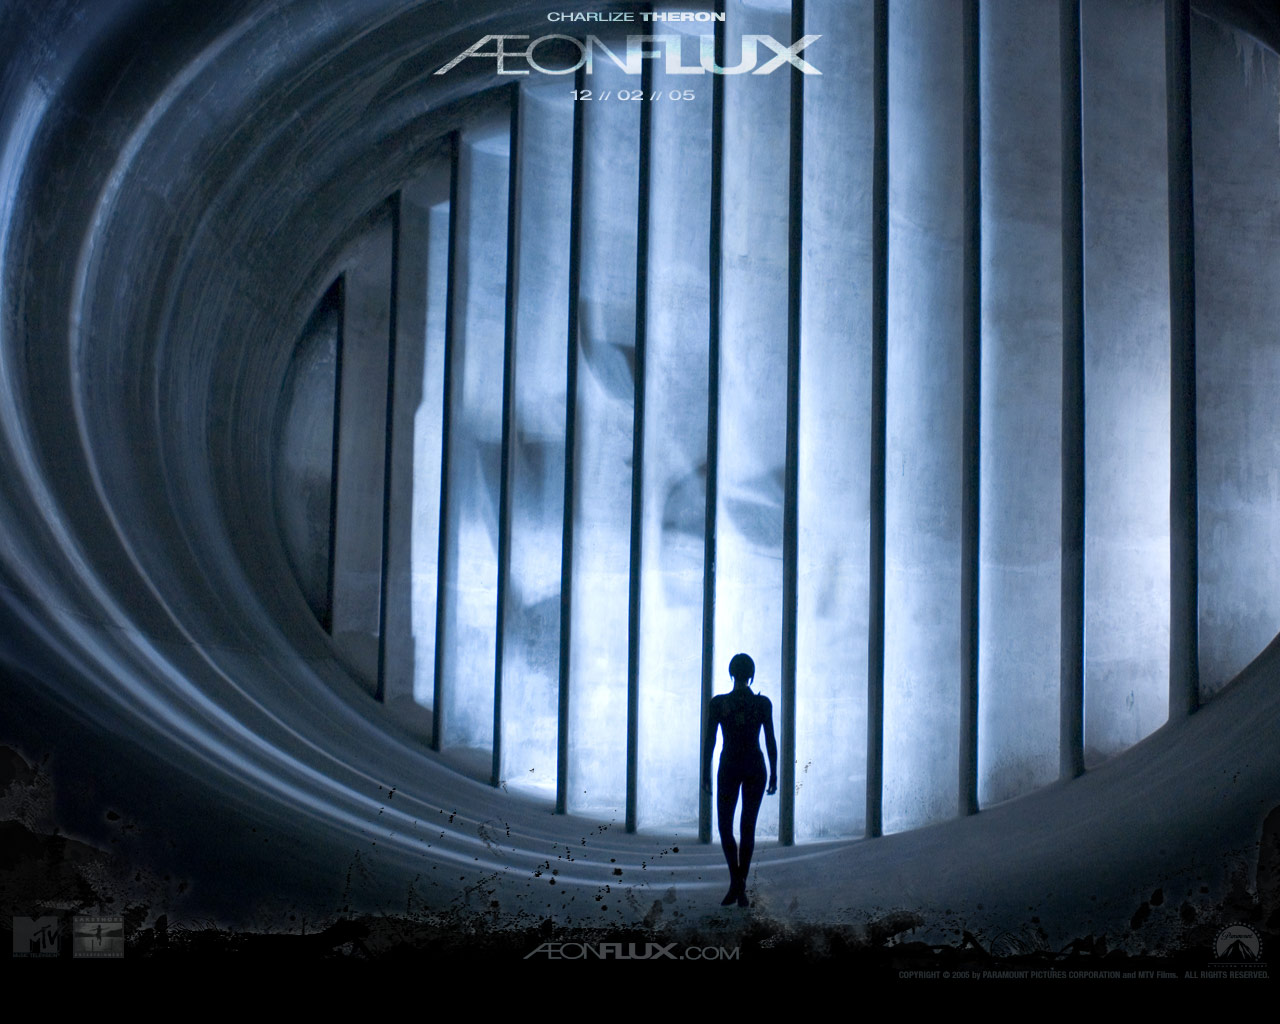 AeonFlux 4 wallpapers